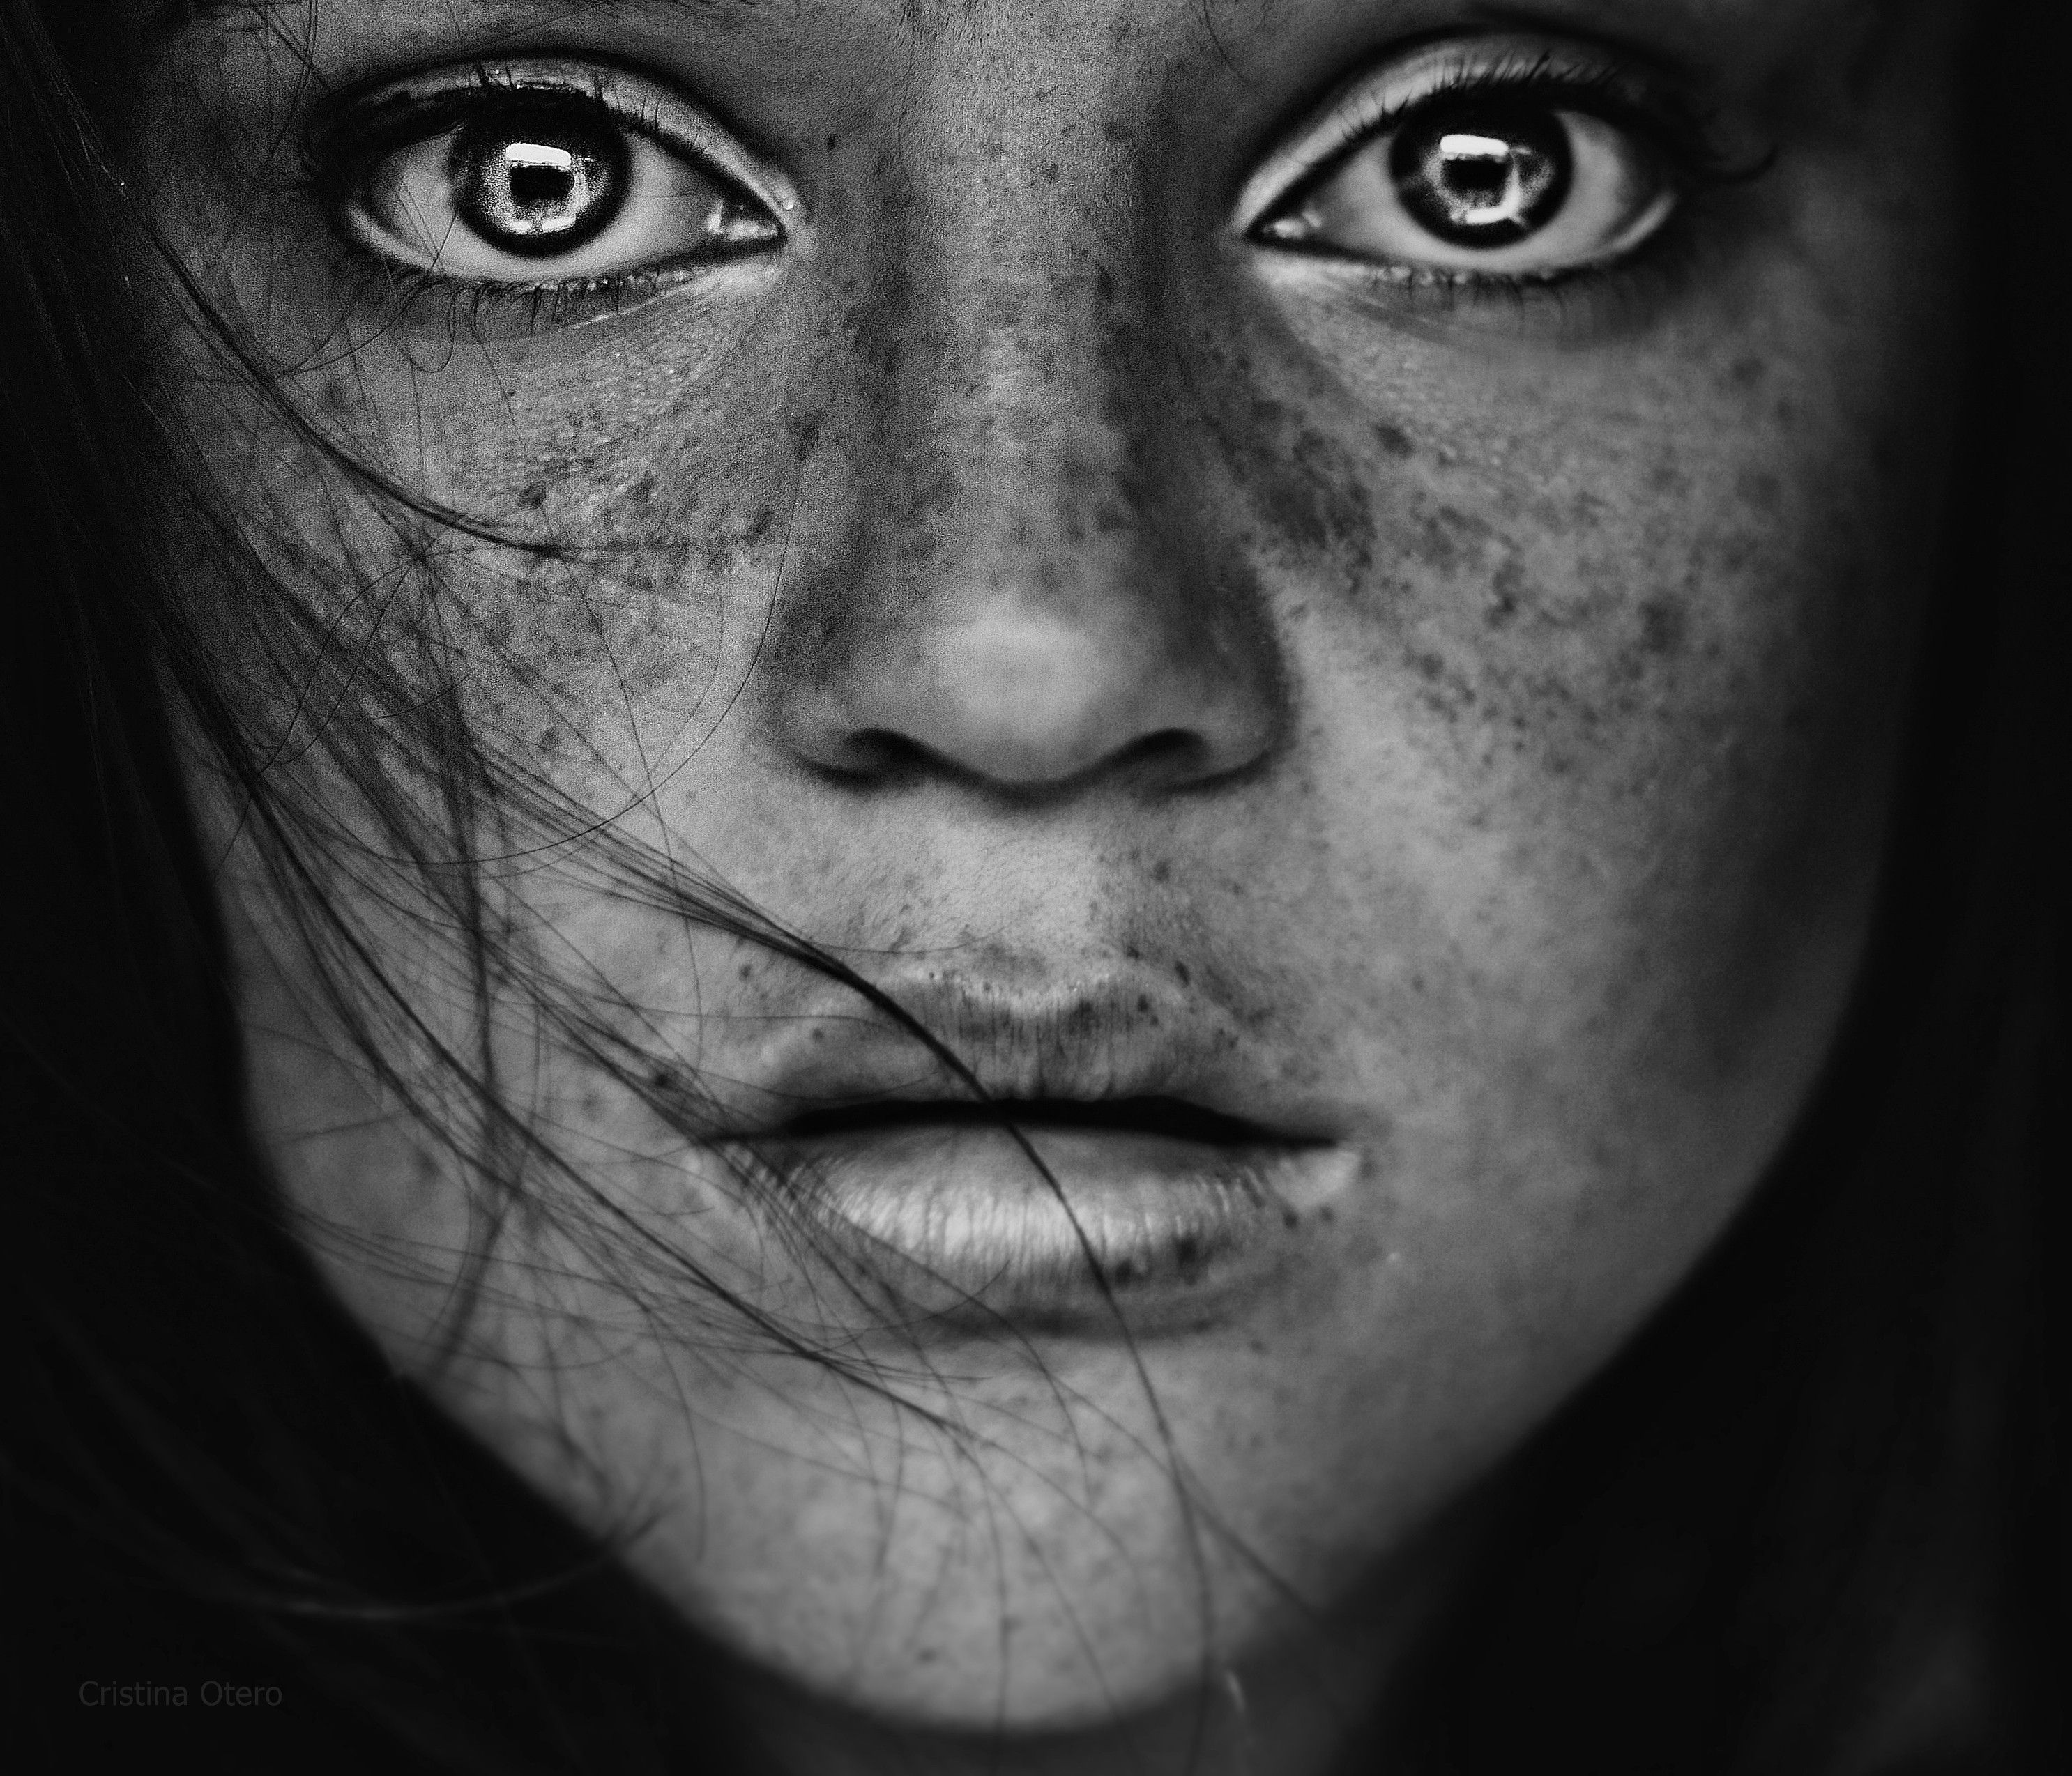 Cristina otero photograph of freckle face young womans eyes